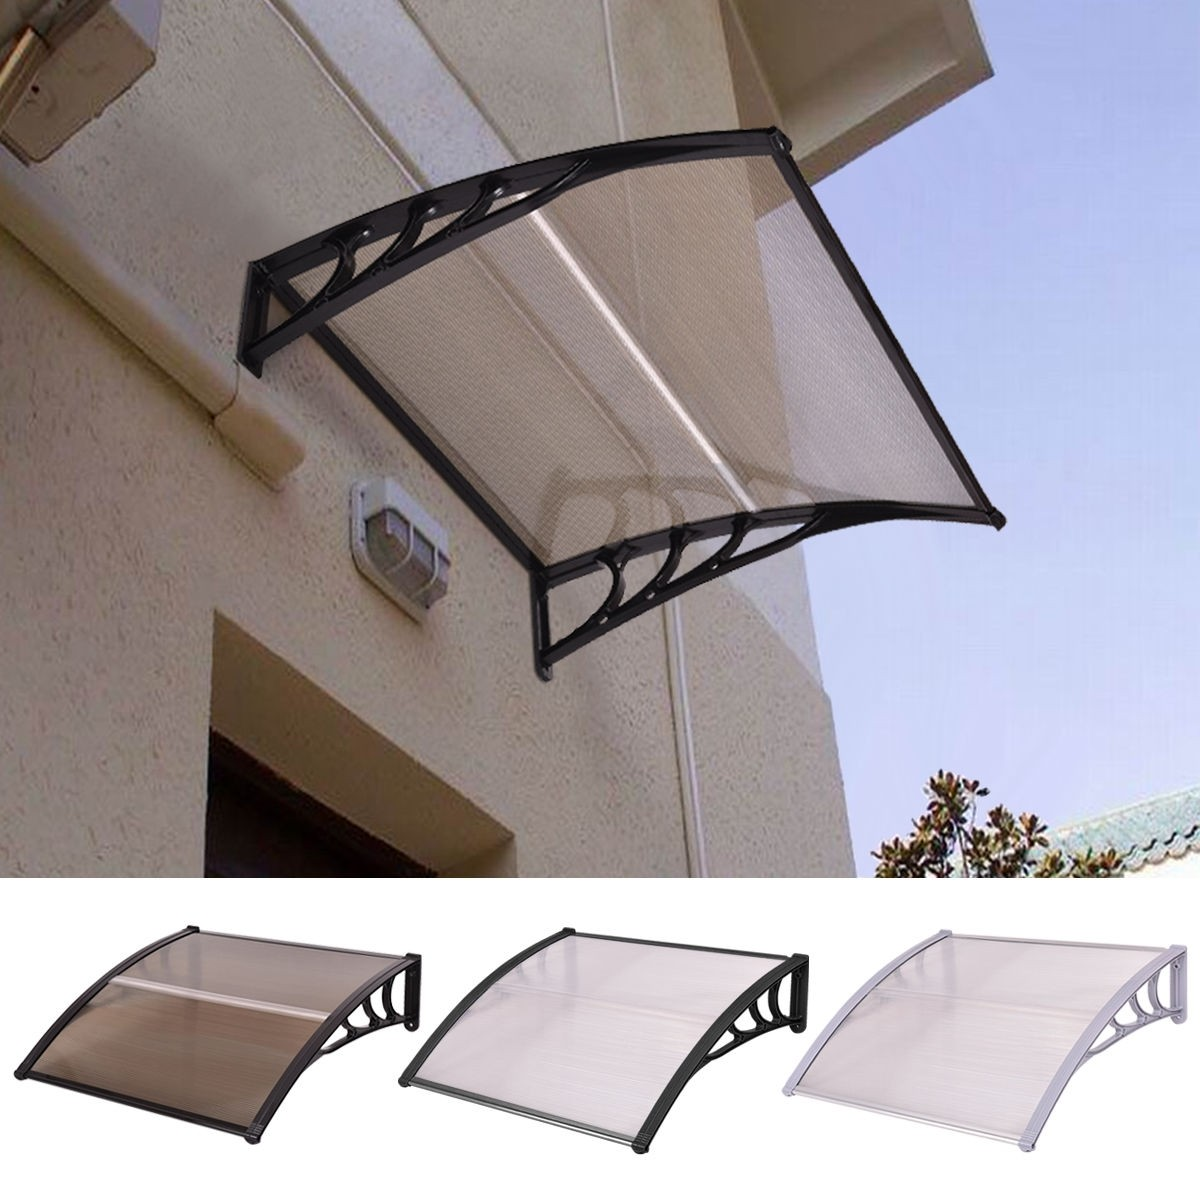 Youu0027re viewing 40u2033 x 40u2033 Outdoor Polycarbonate Front Door Window Awning Canopy - Login to see prices - & 40u2033 x 40u2033 Outdoor Polycarbonate Front Door Window Awning Canopy u2013 By ...